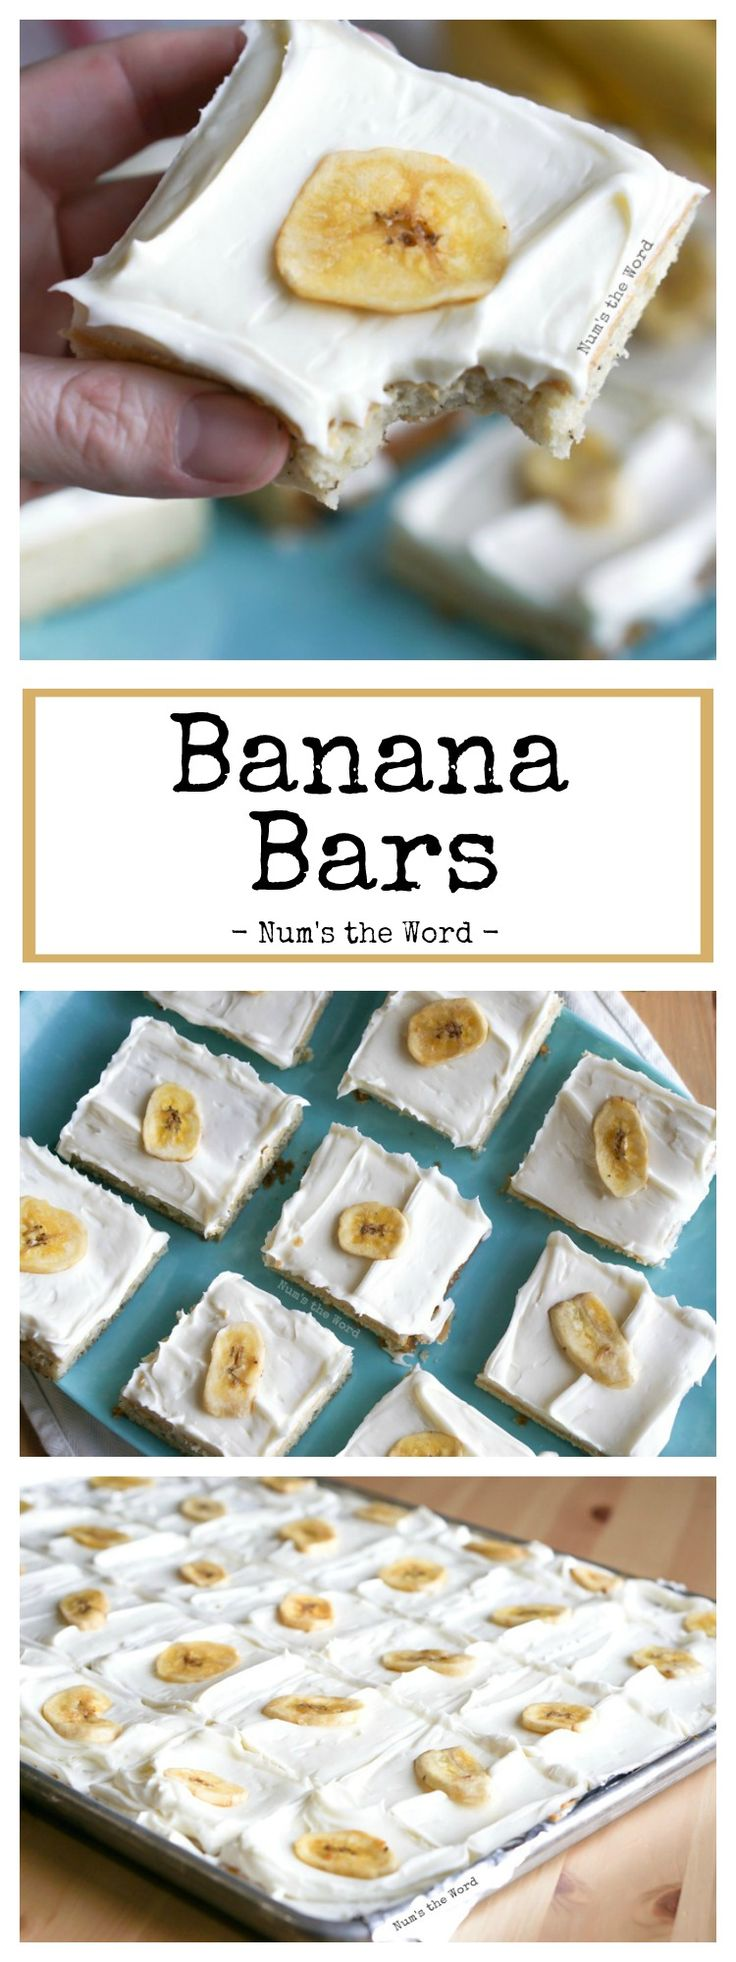 These Banana Bars are easy and straight forward. Topped with homemade cream cheese frosting and they become irresistible! A perfect, easy kid approved treat!